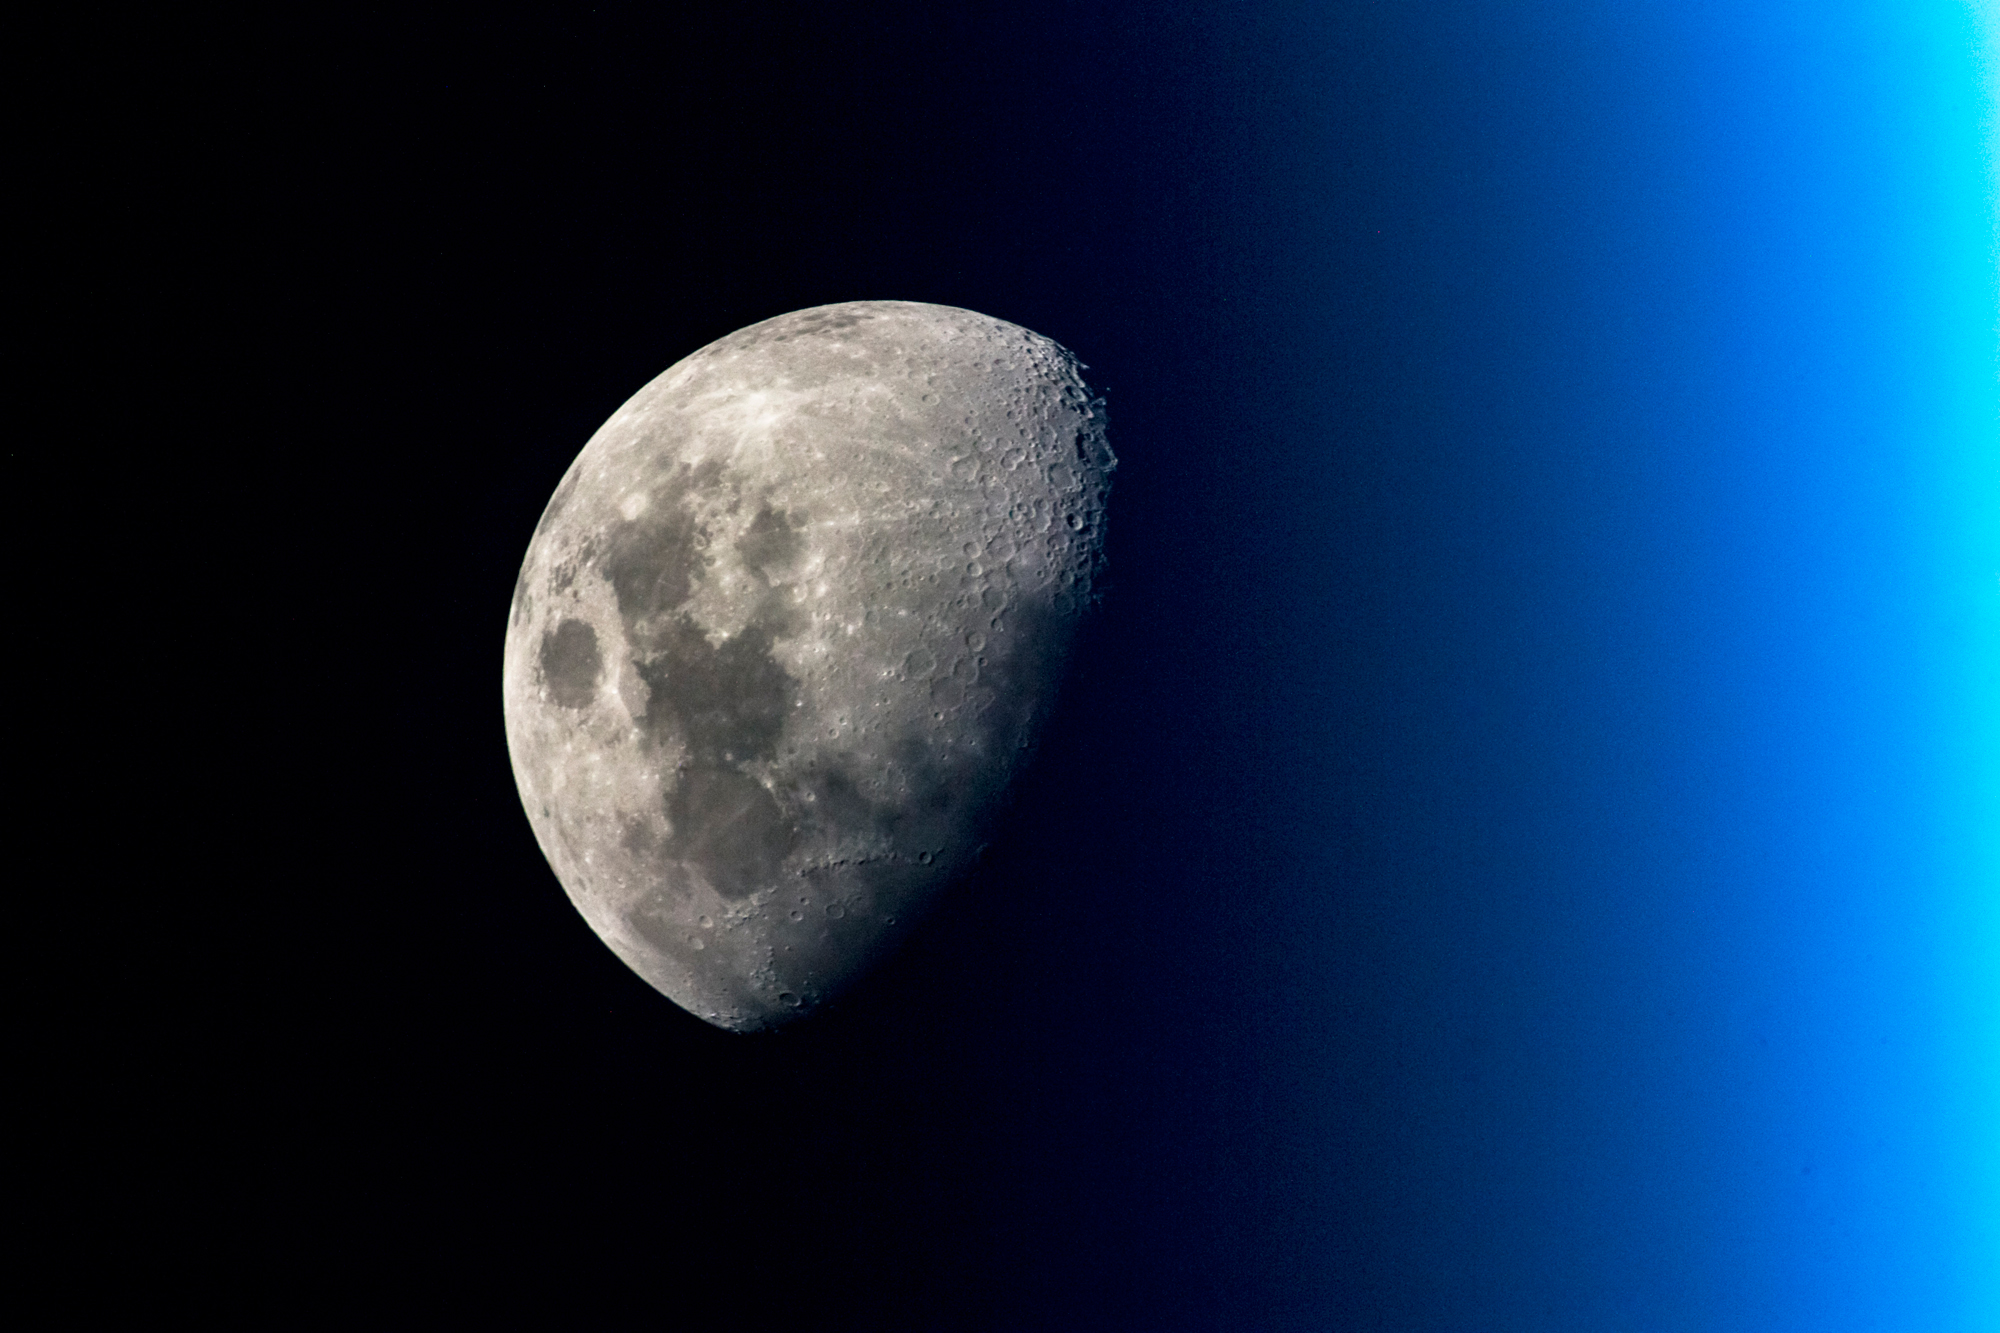 Mining Moon Ice: Prospecting Plans Starting to Take Shape   Space